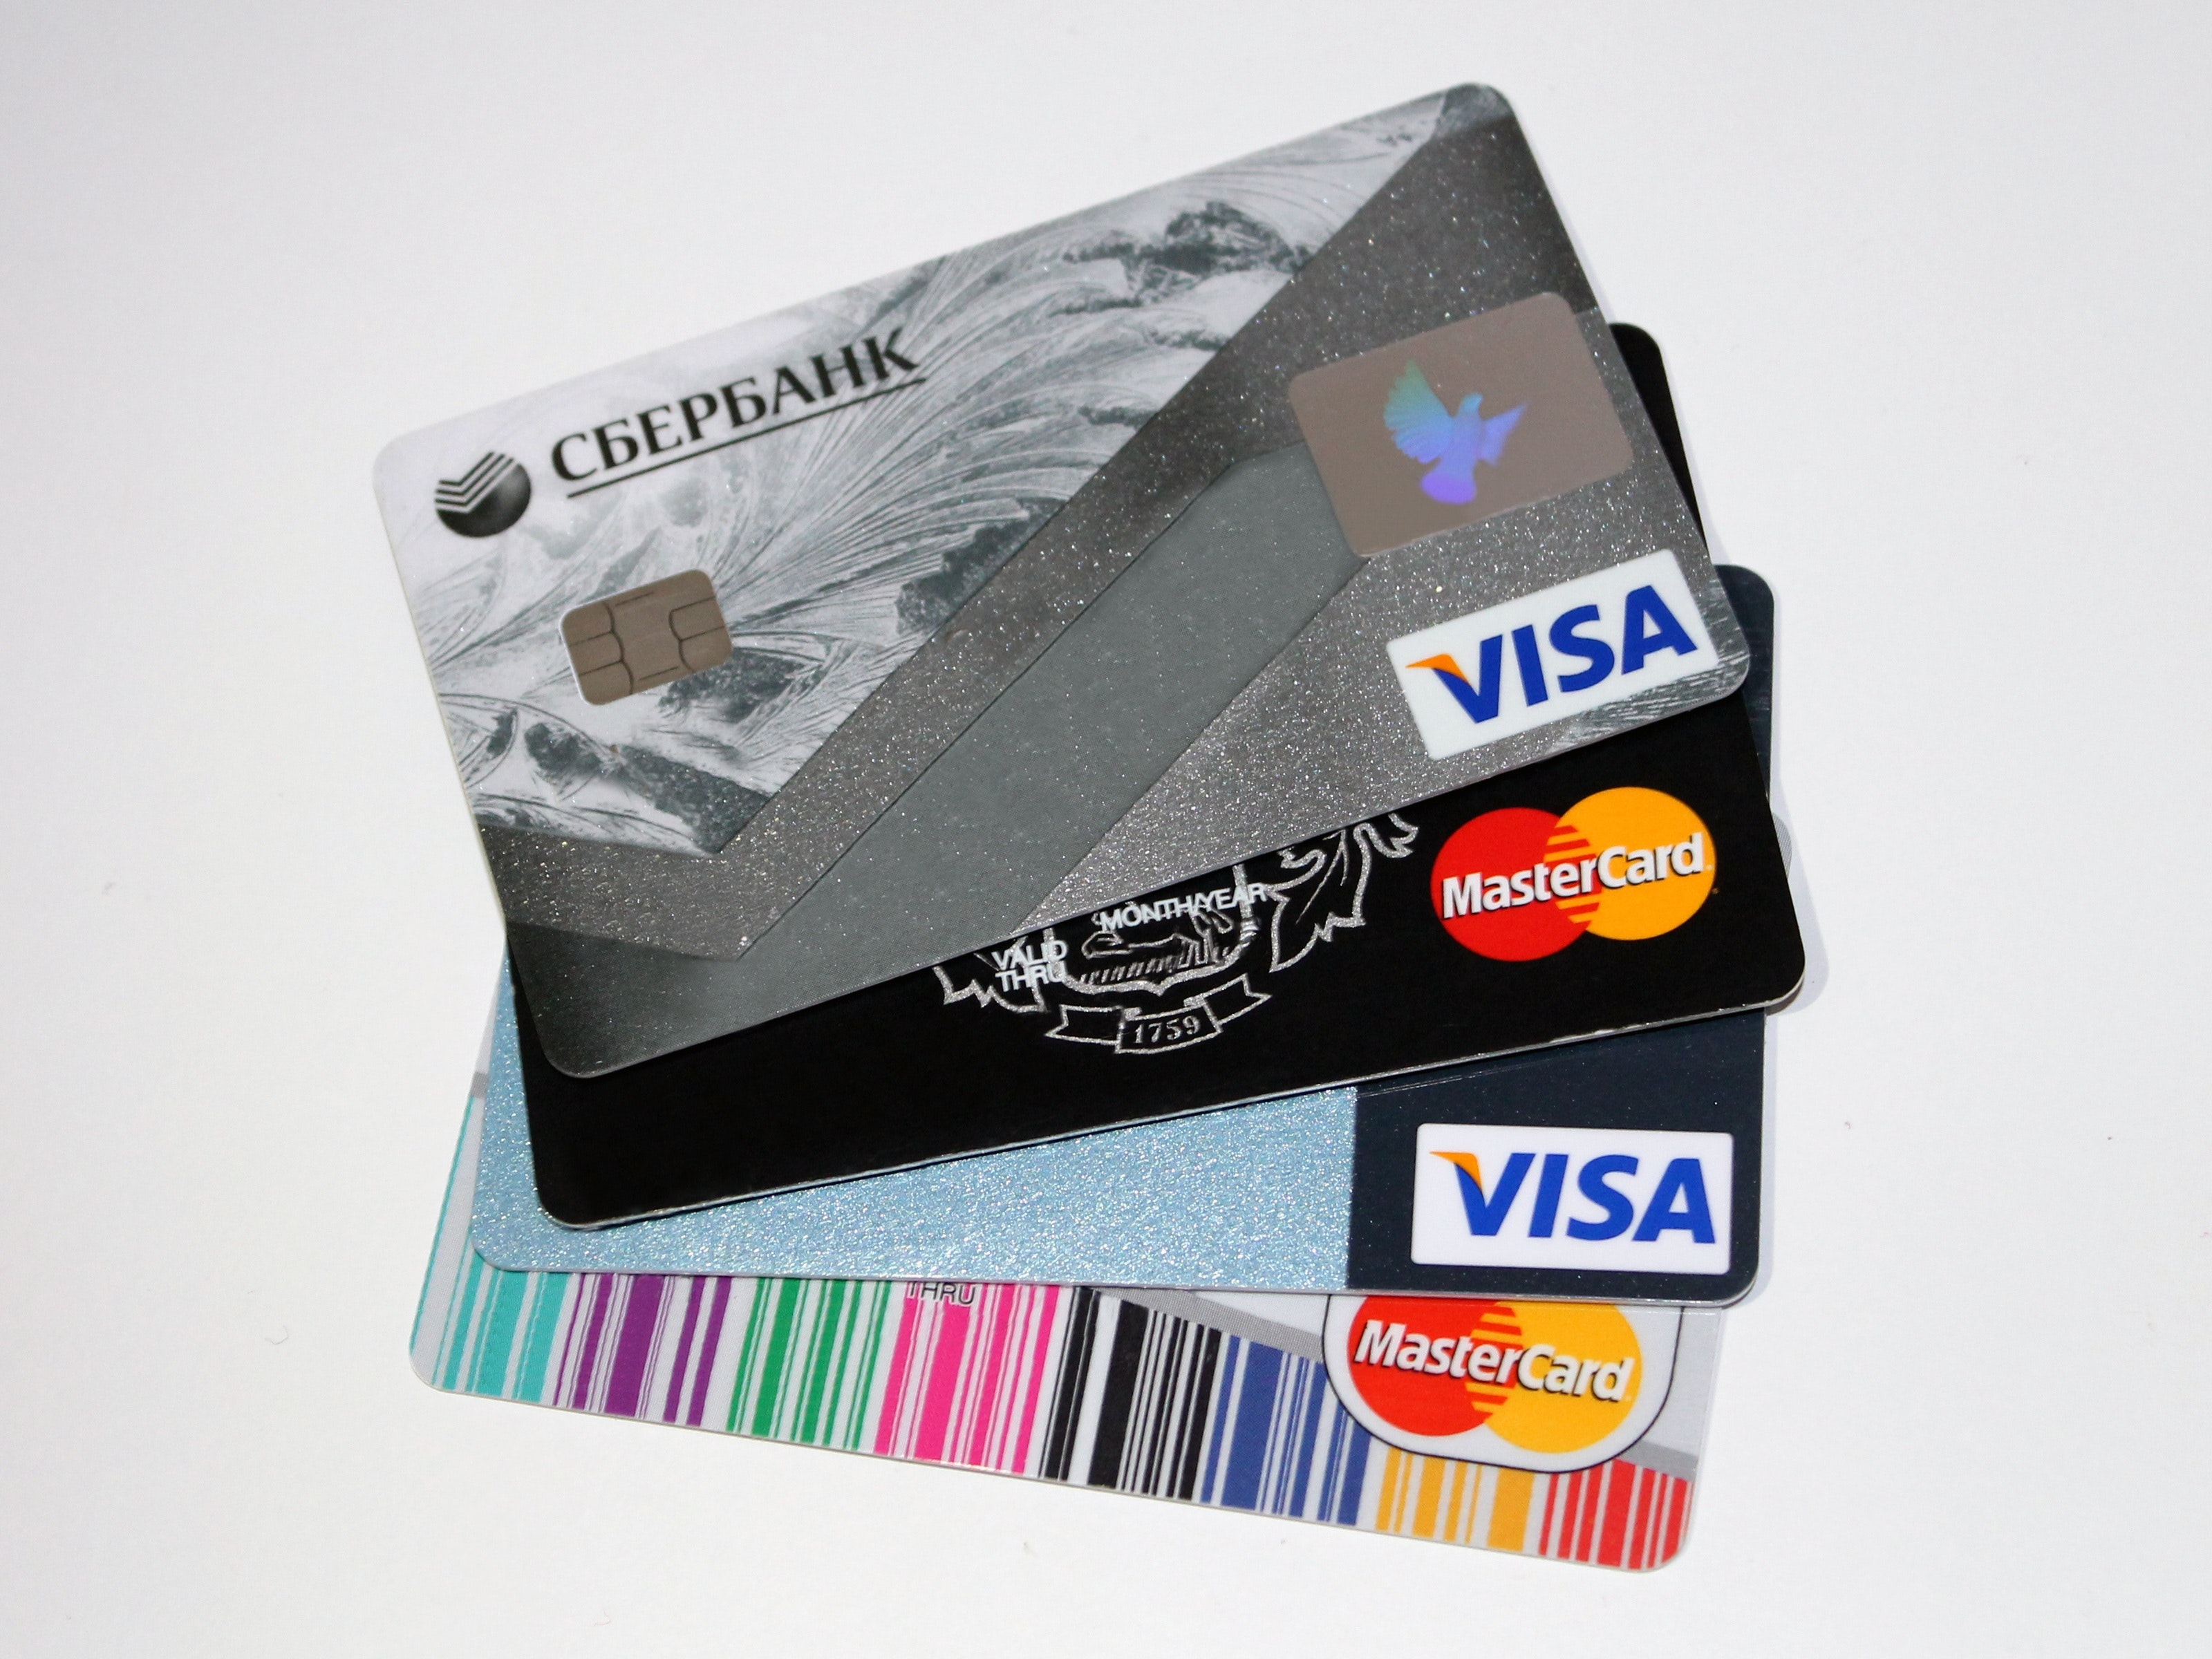 Should you close a credit card you're not using?